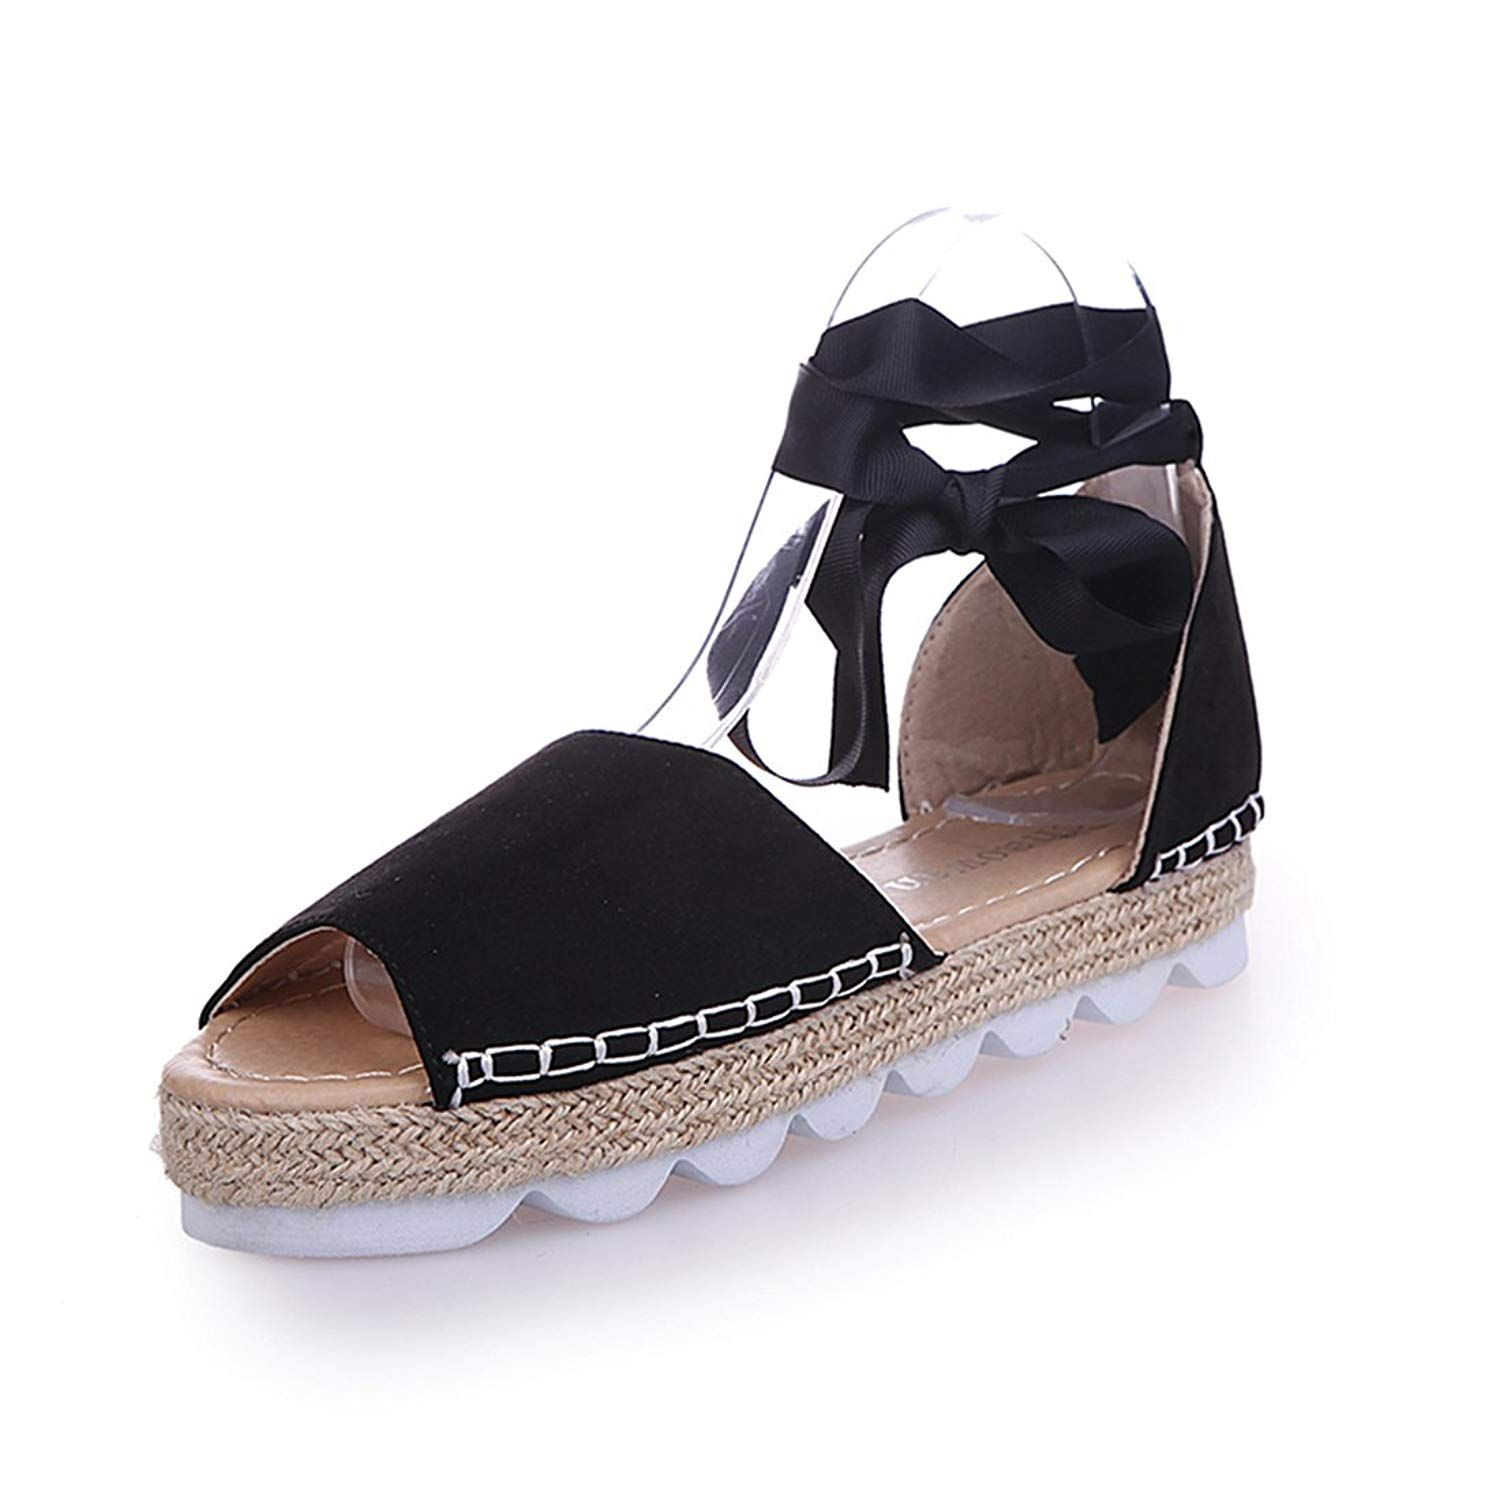 Ankle strap shoes, Womens sandals